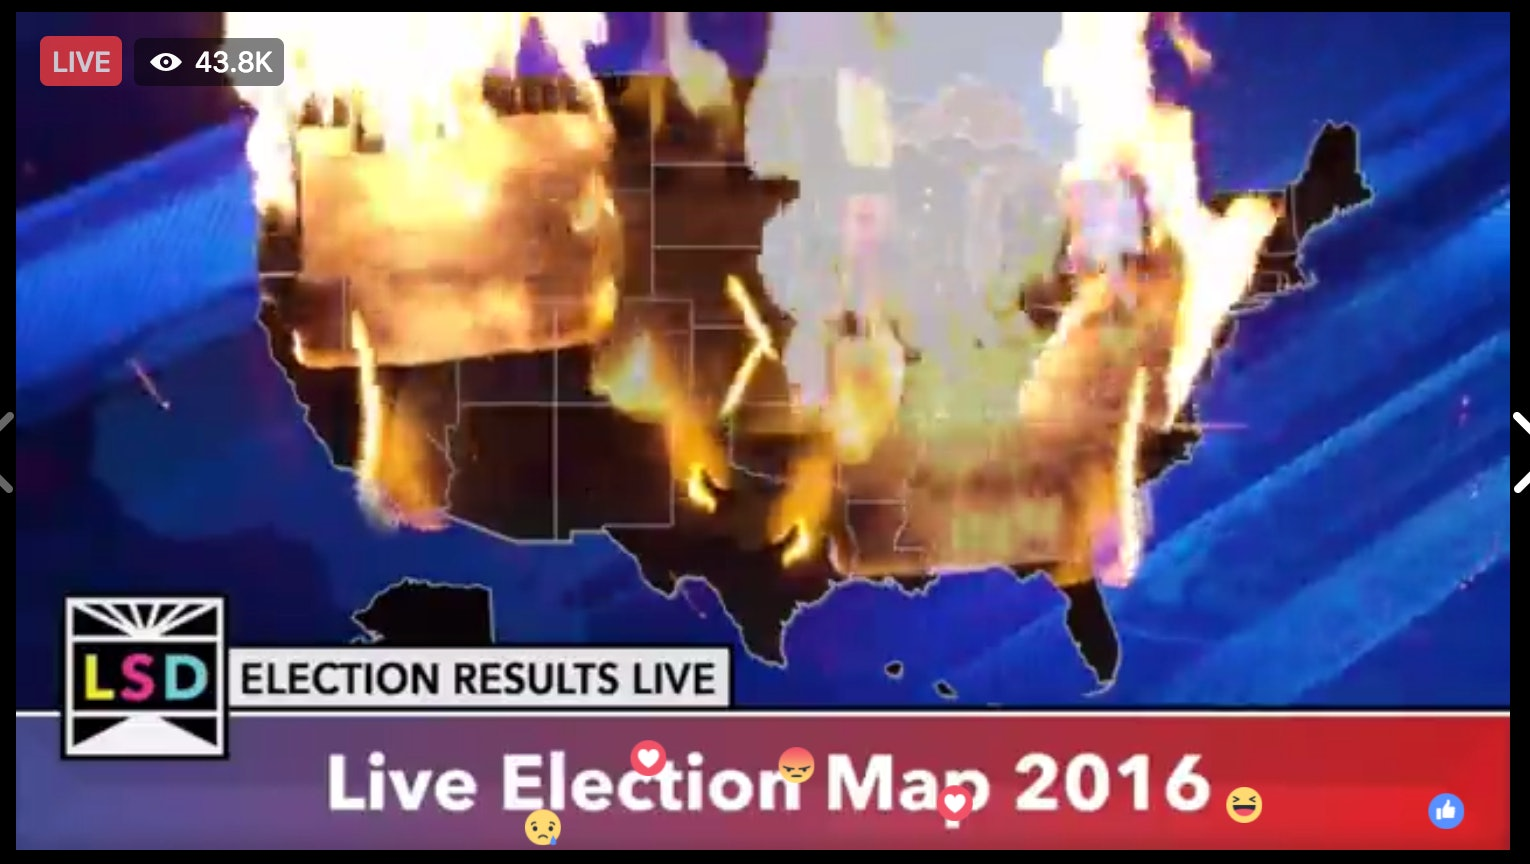 Check Out This Video Of An Electoral Map On Fire - Hd us election map